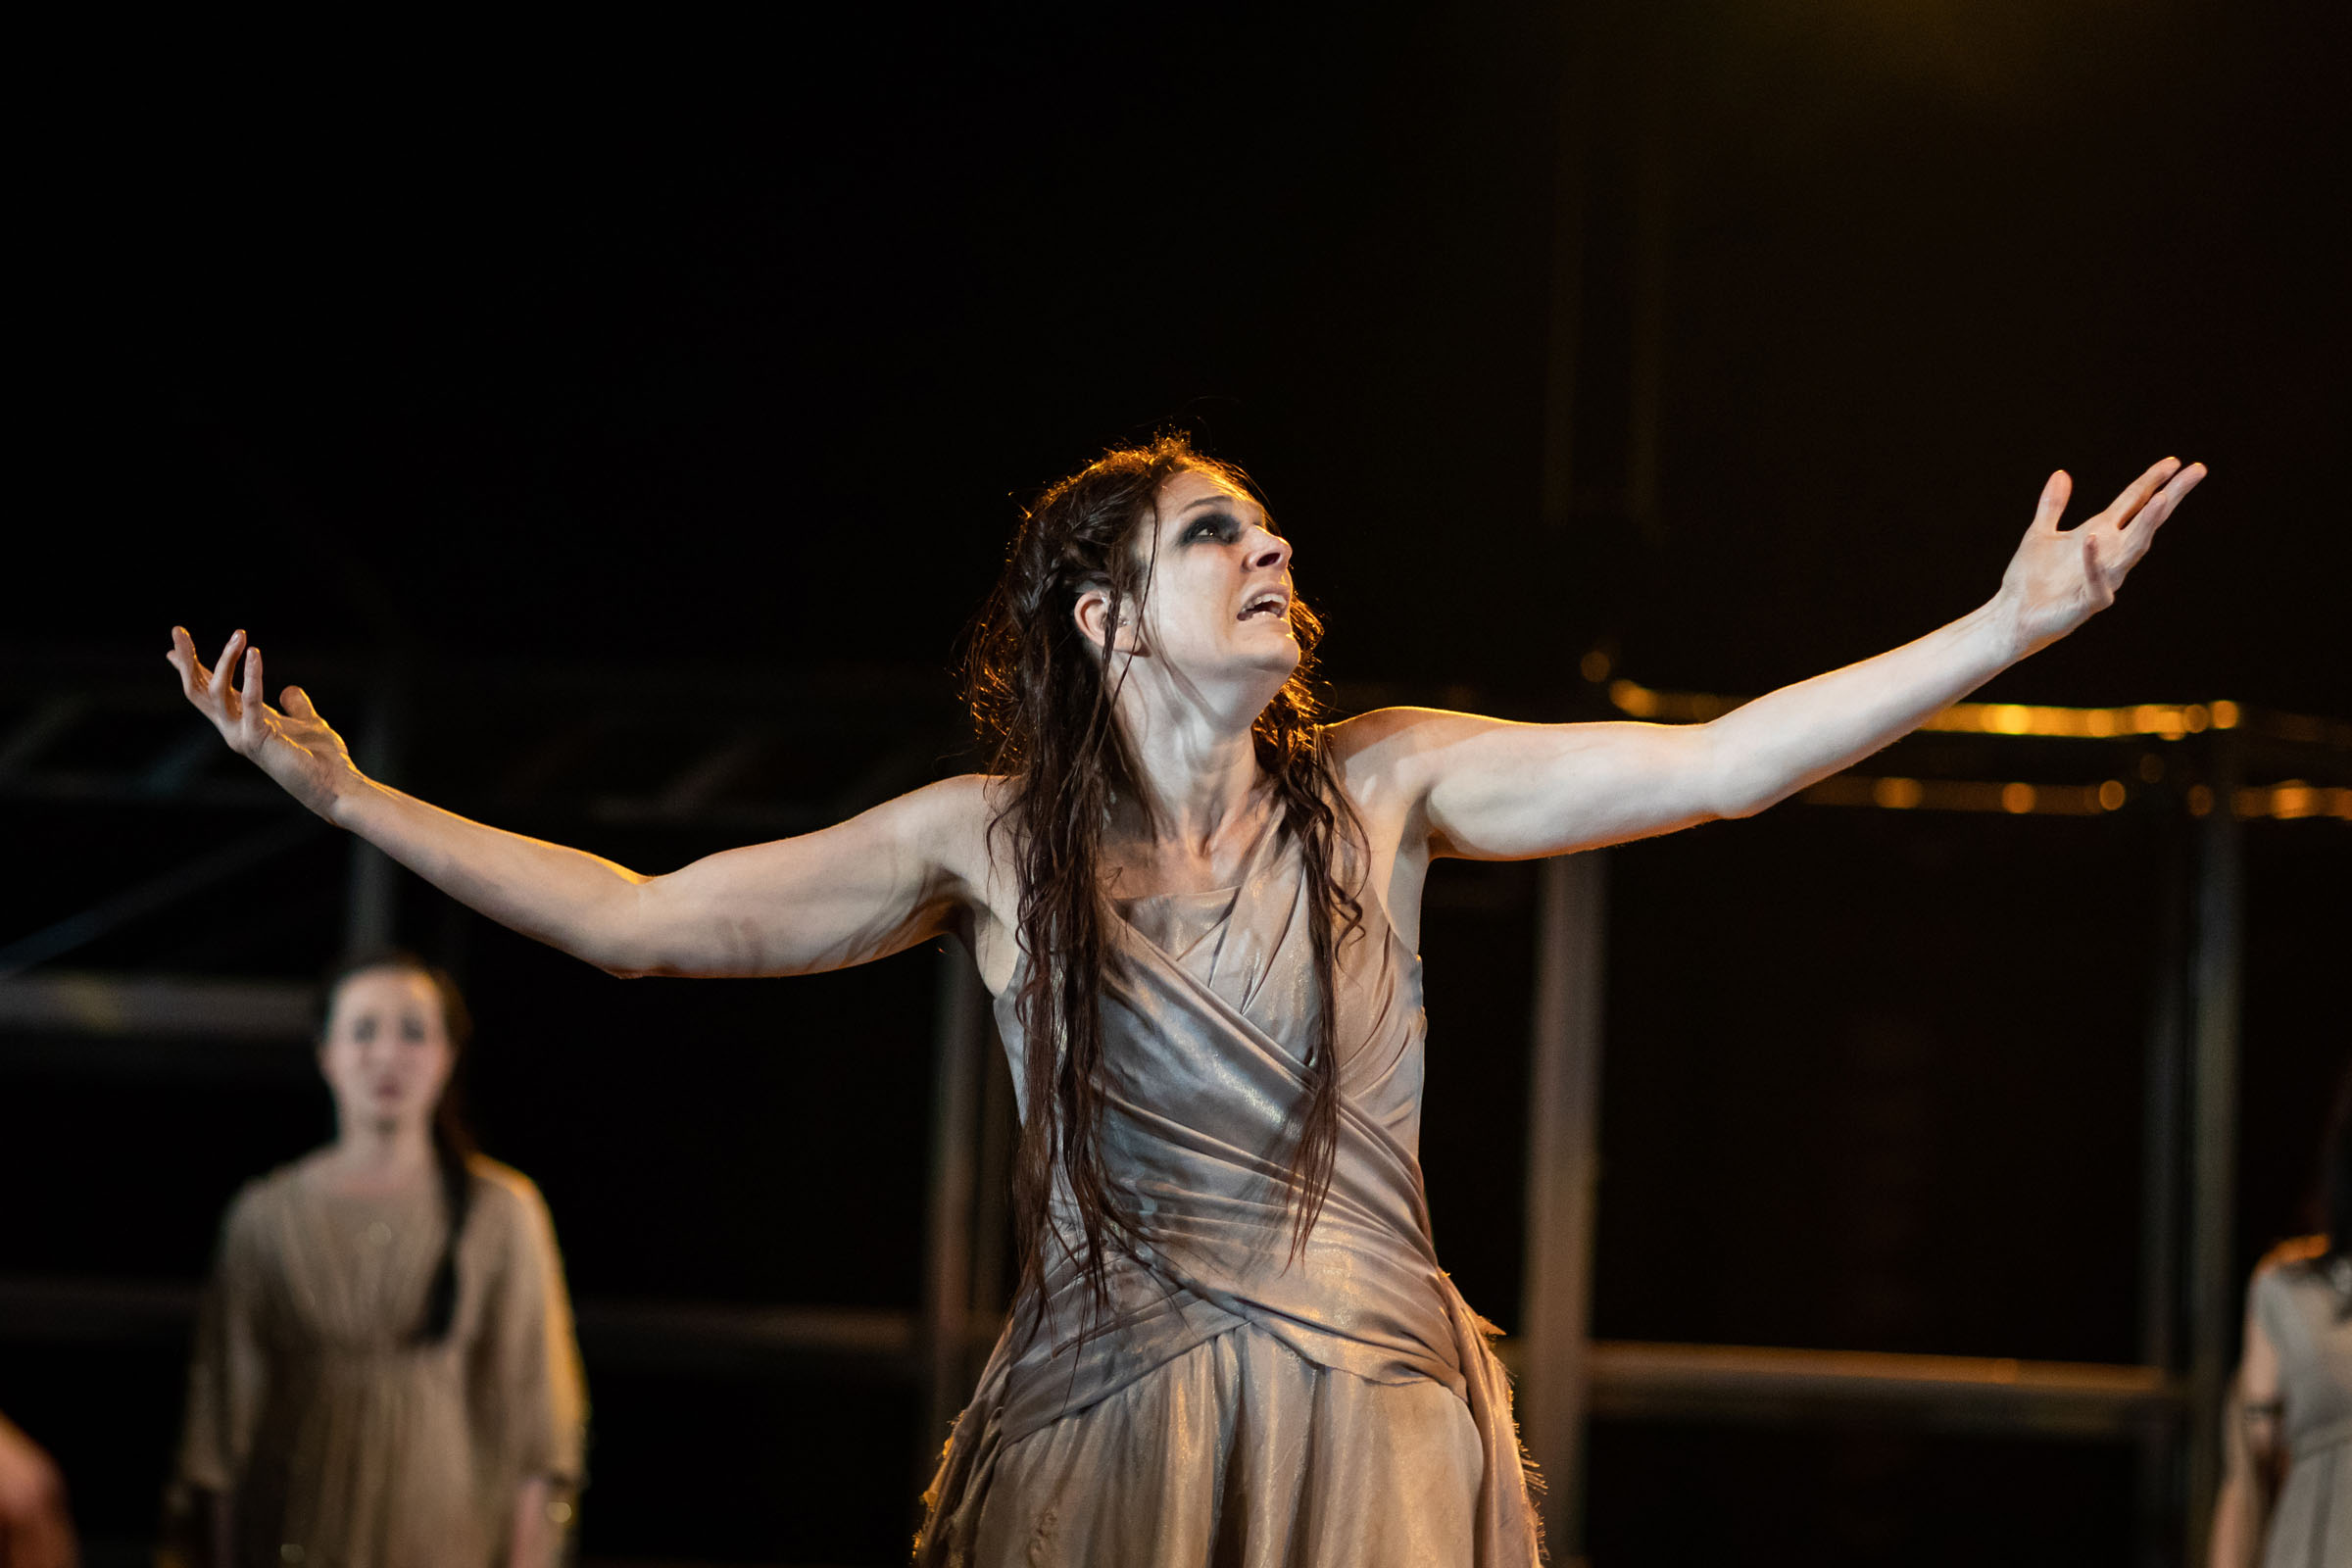 Charlotte Arrowsmith as Cassandra in 'Troilus and Cressida' at the RSC